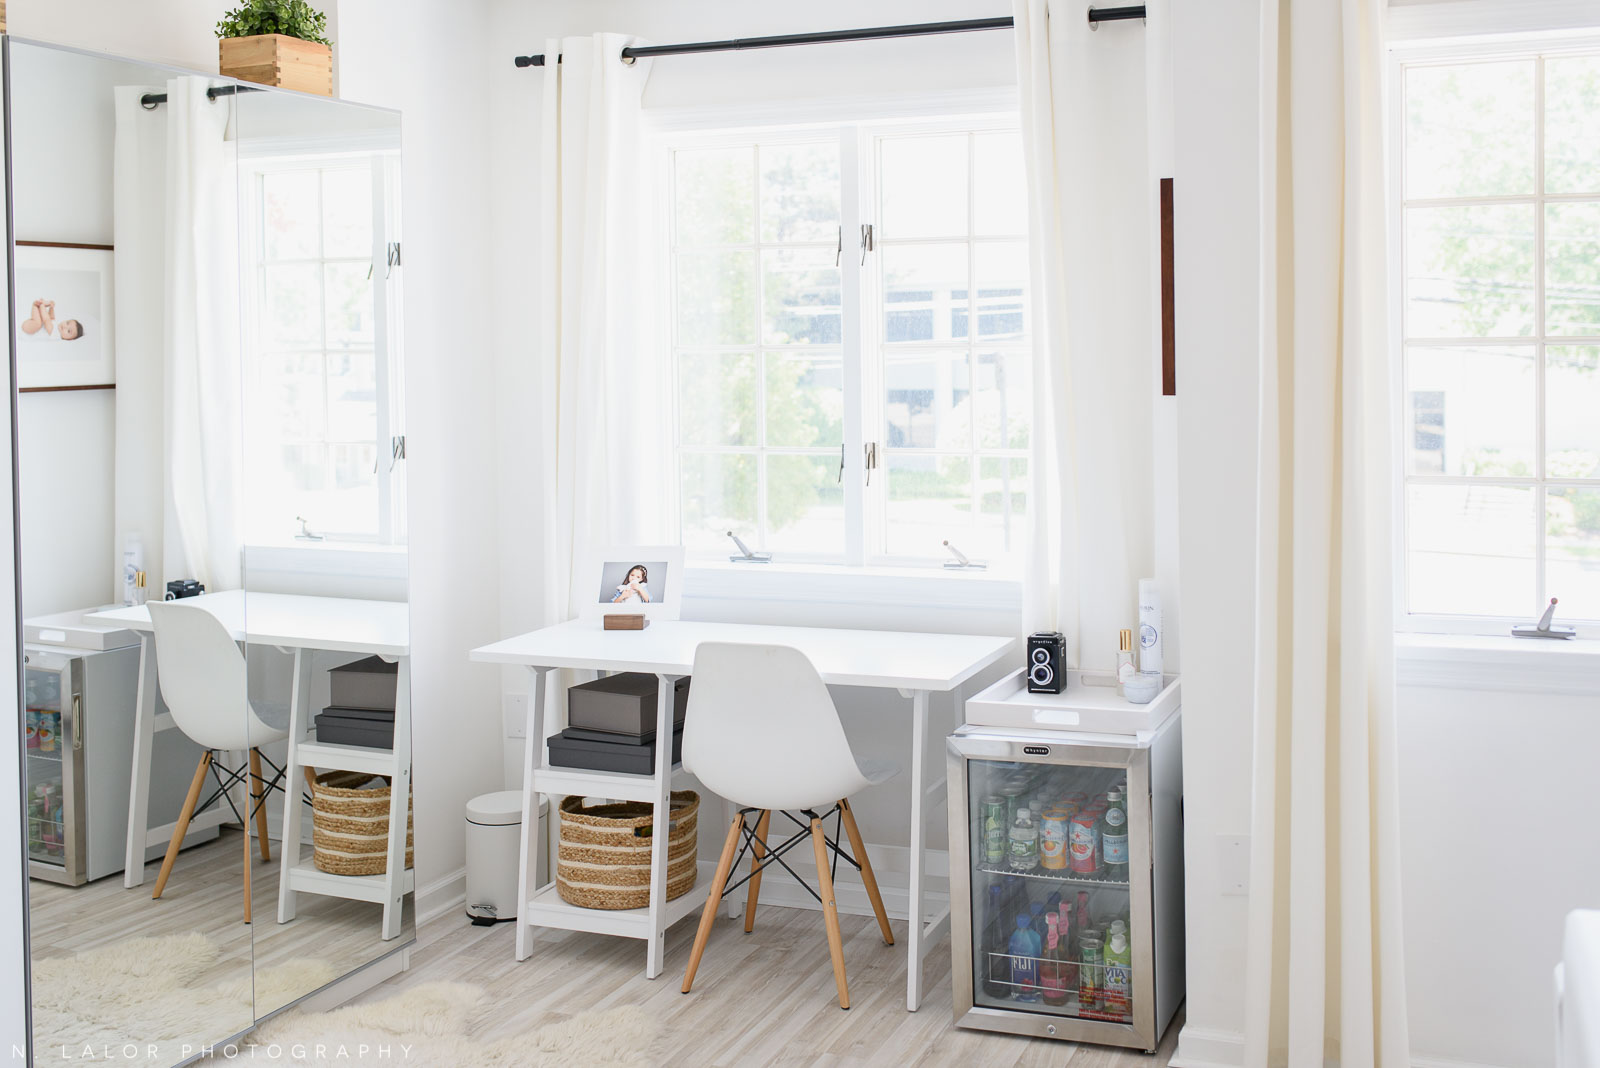 N. Lalor Photography Studio - work area with white table and mini fridge.